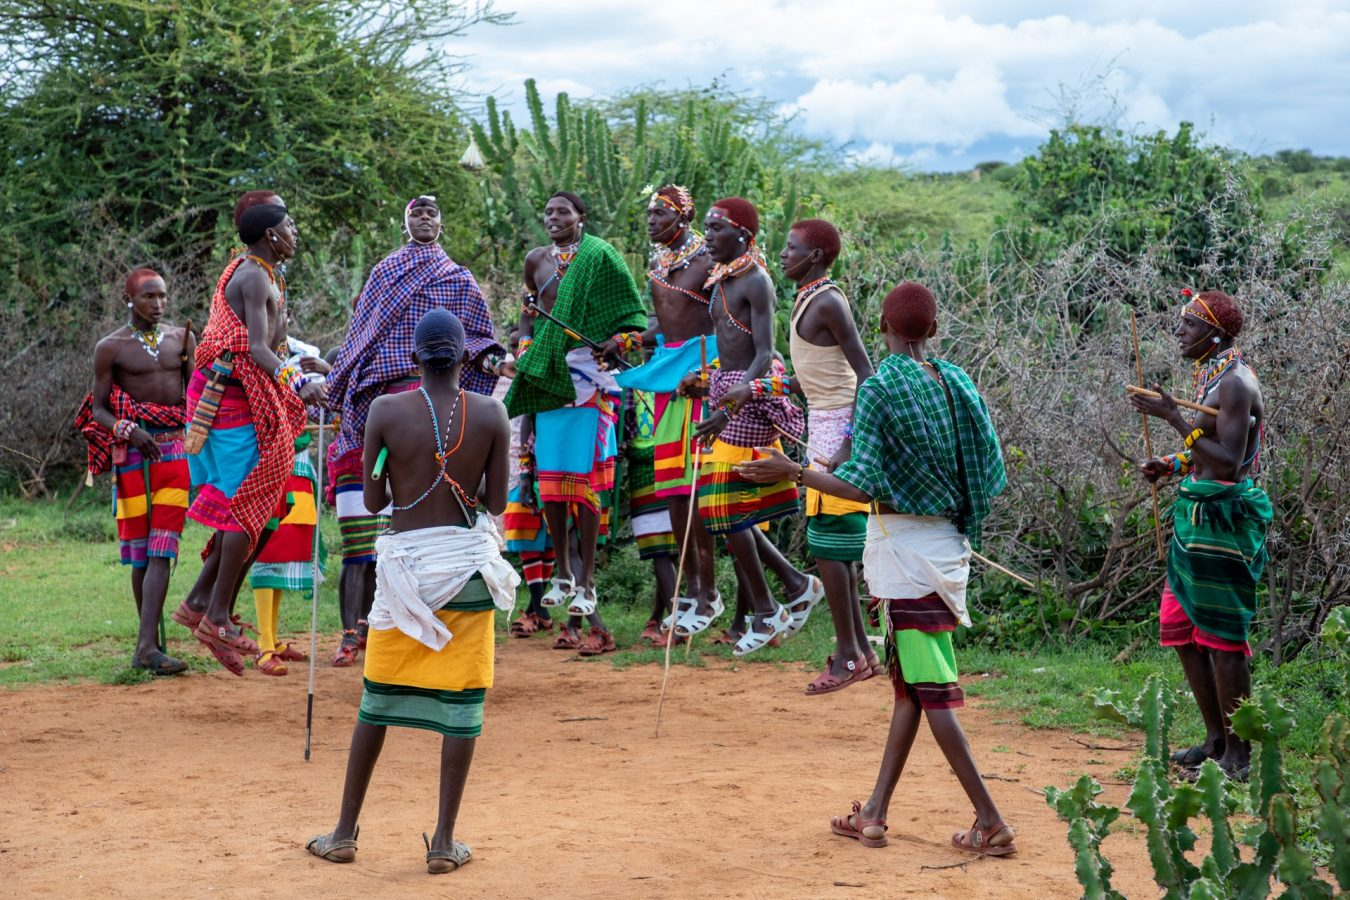 young men from the village showing their traditional dances